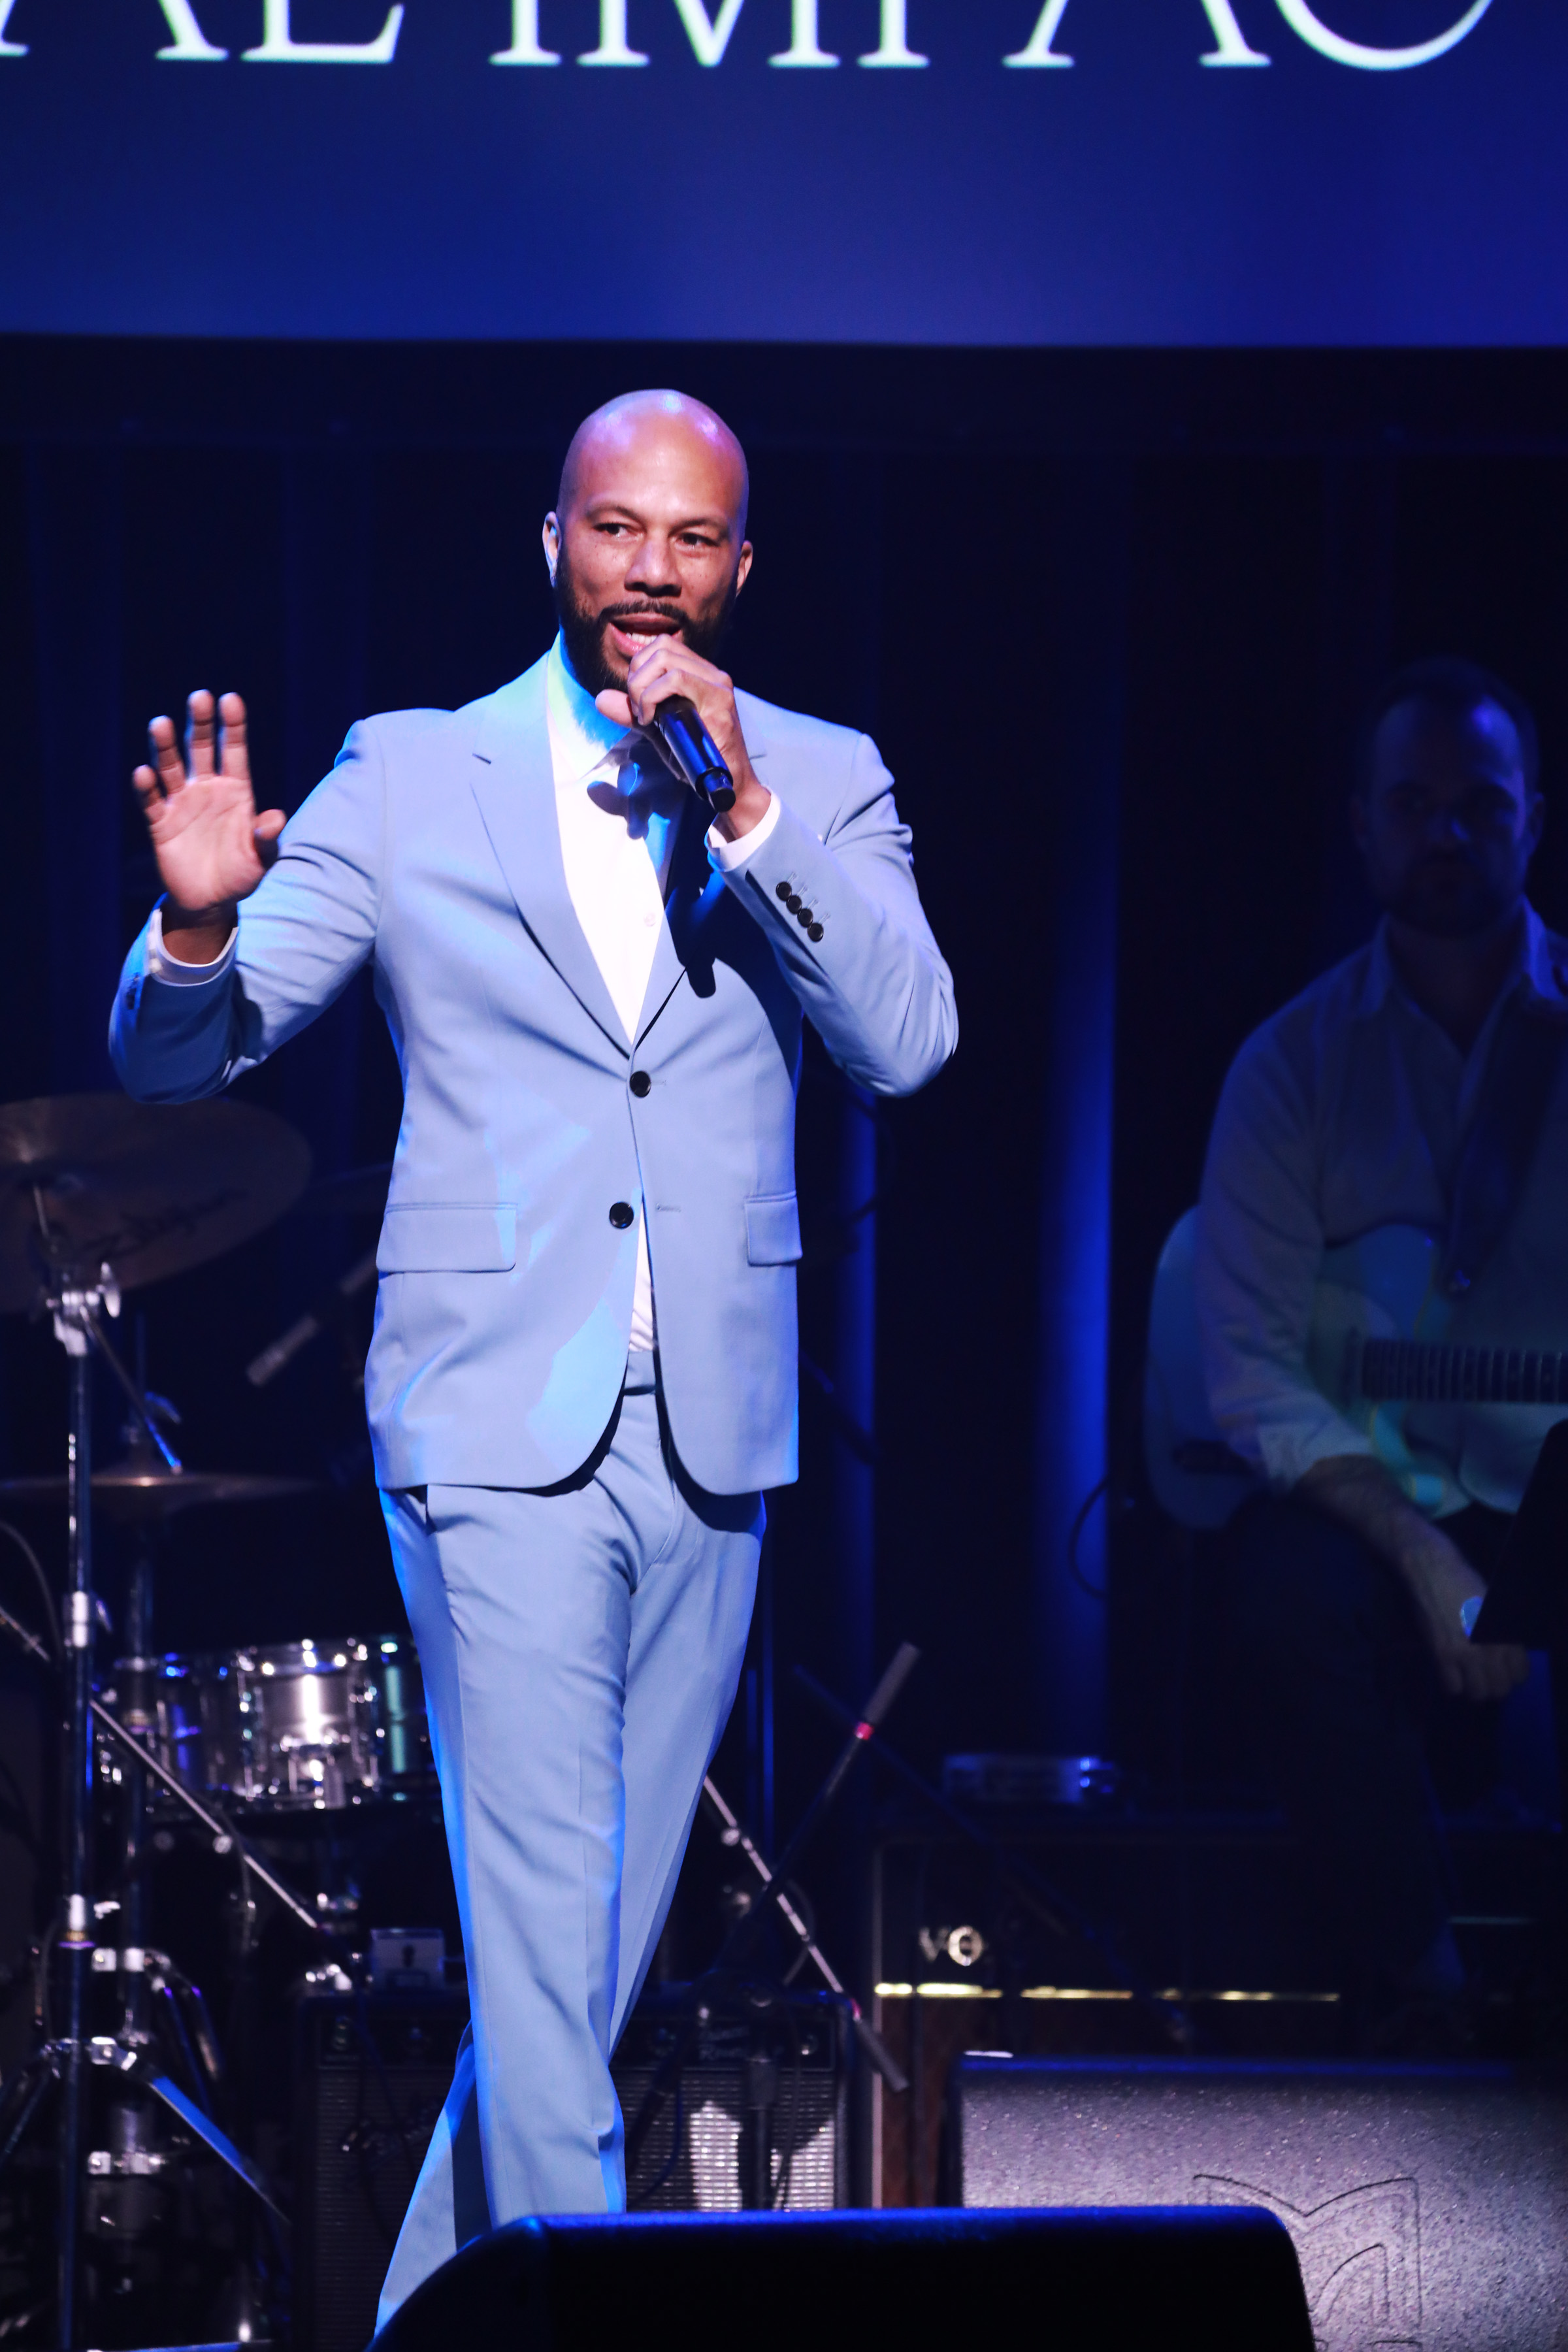 Common performs onstage at the Lena Horne Prize Event Honoring Solange Knowles in February in New York City.